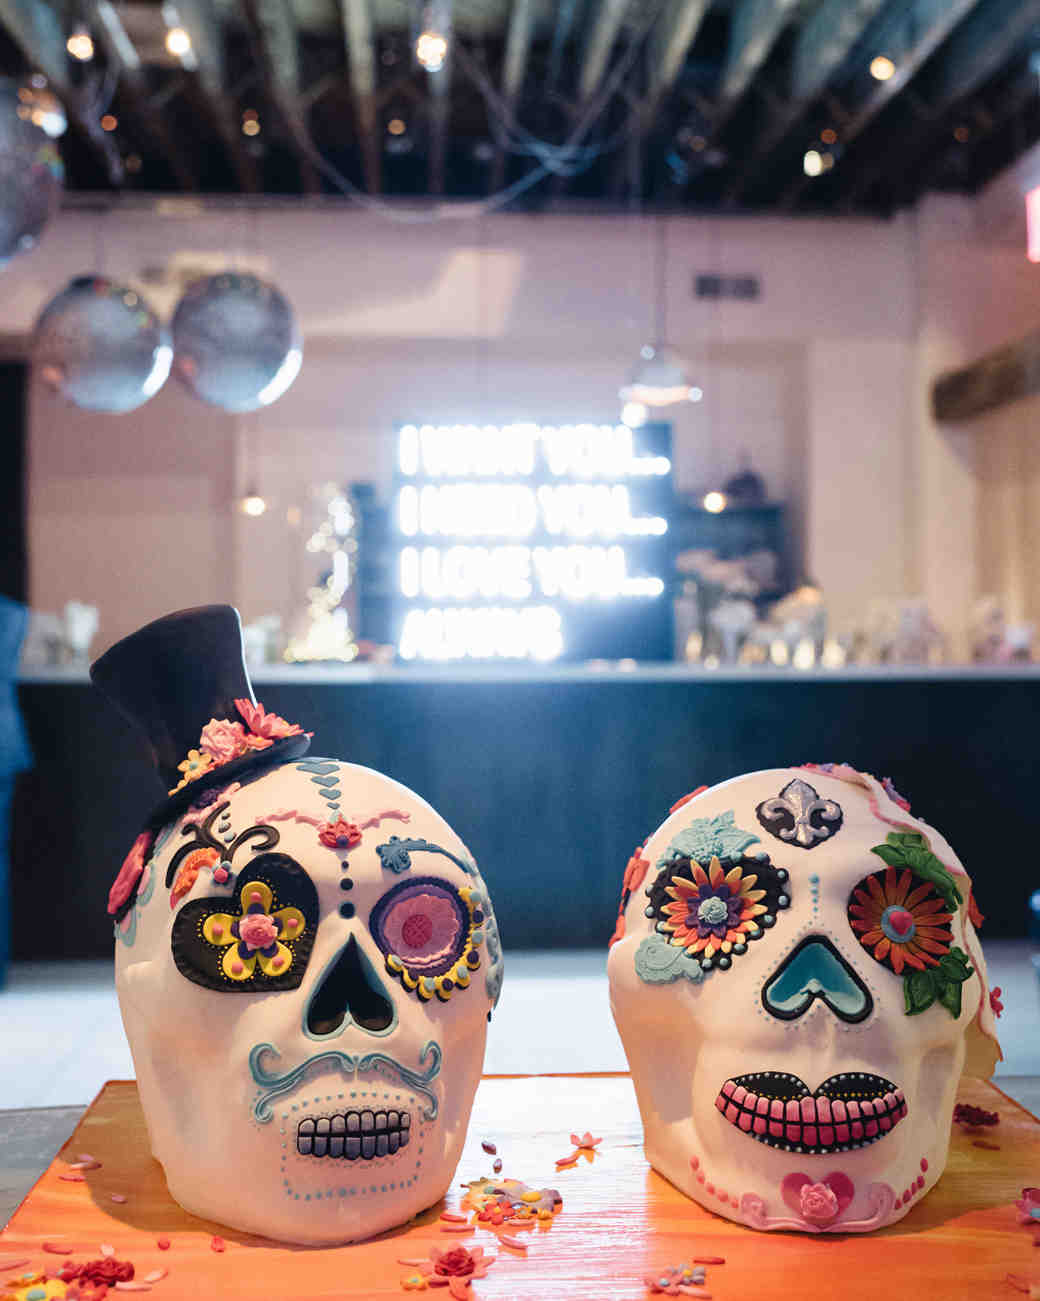 skull-shaped wedding cakes